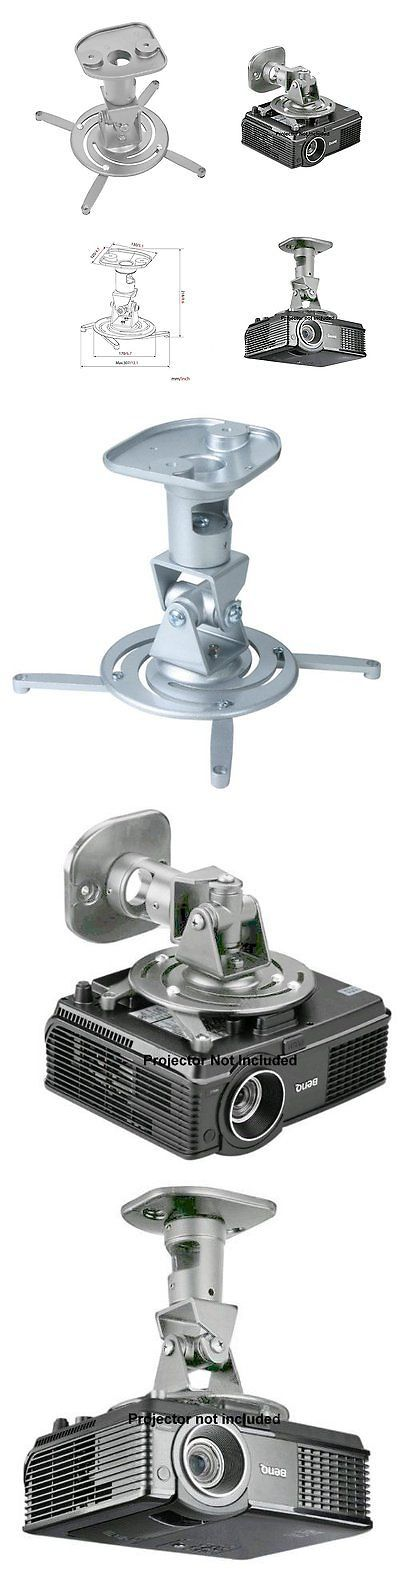 Projector Mounts and Stands: Amer Networks Universal Ceiling Projector Mount - Silver Amrp100s BUY IT NOW ONLY: $37.19